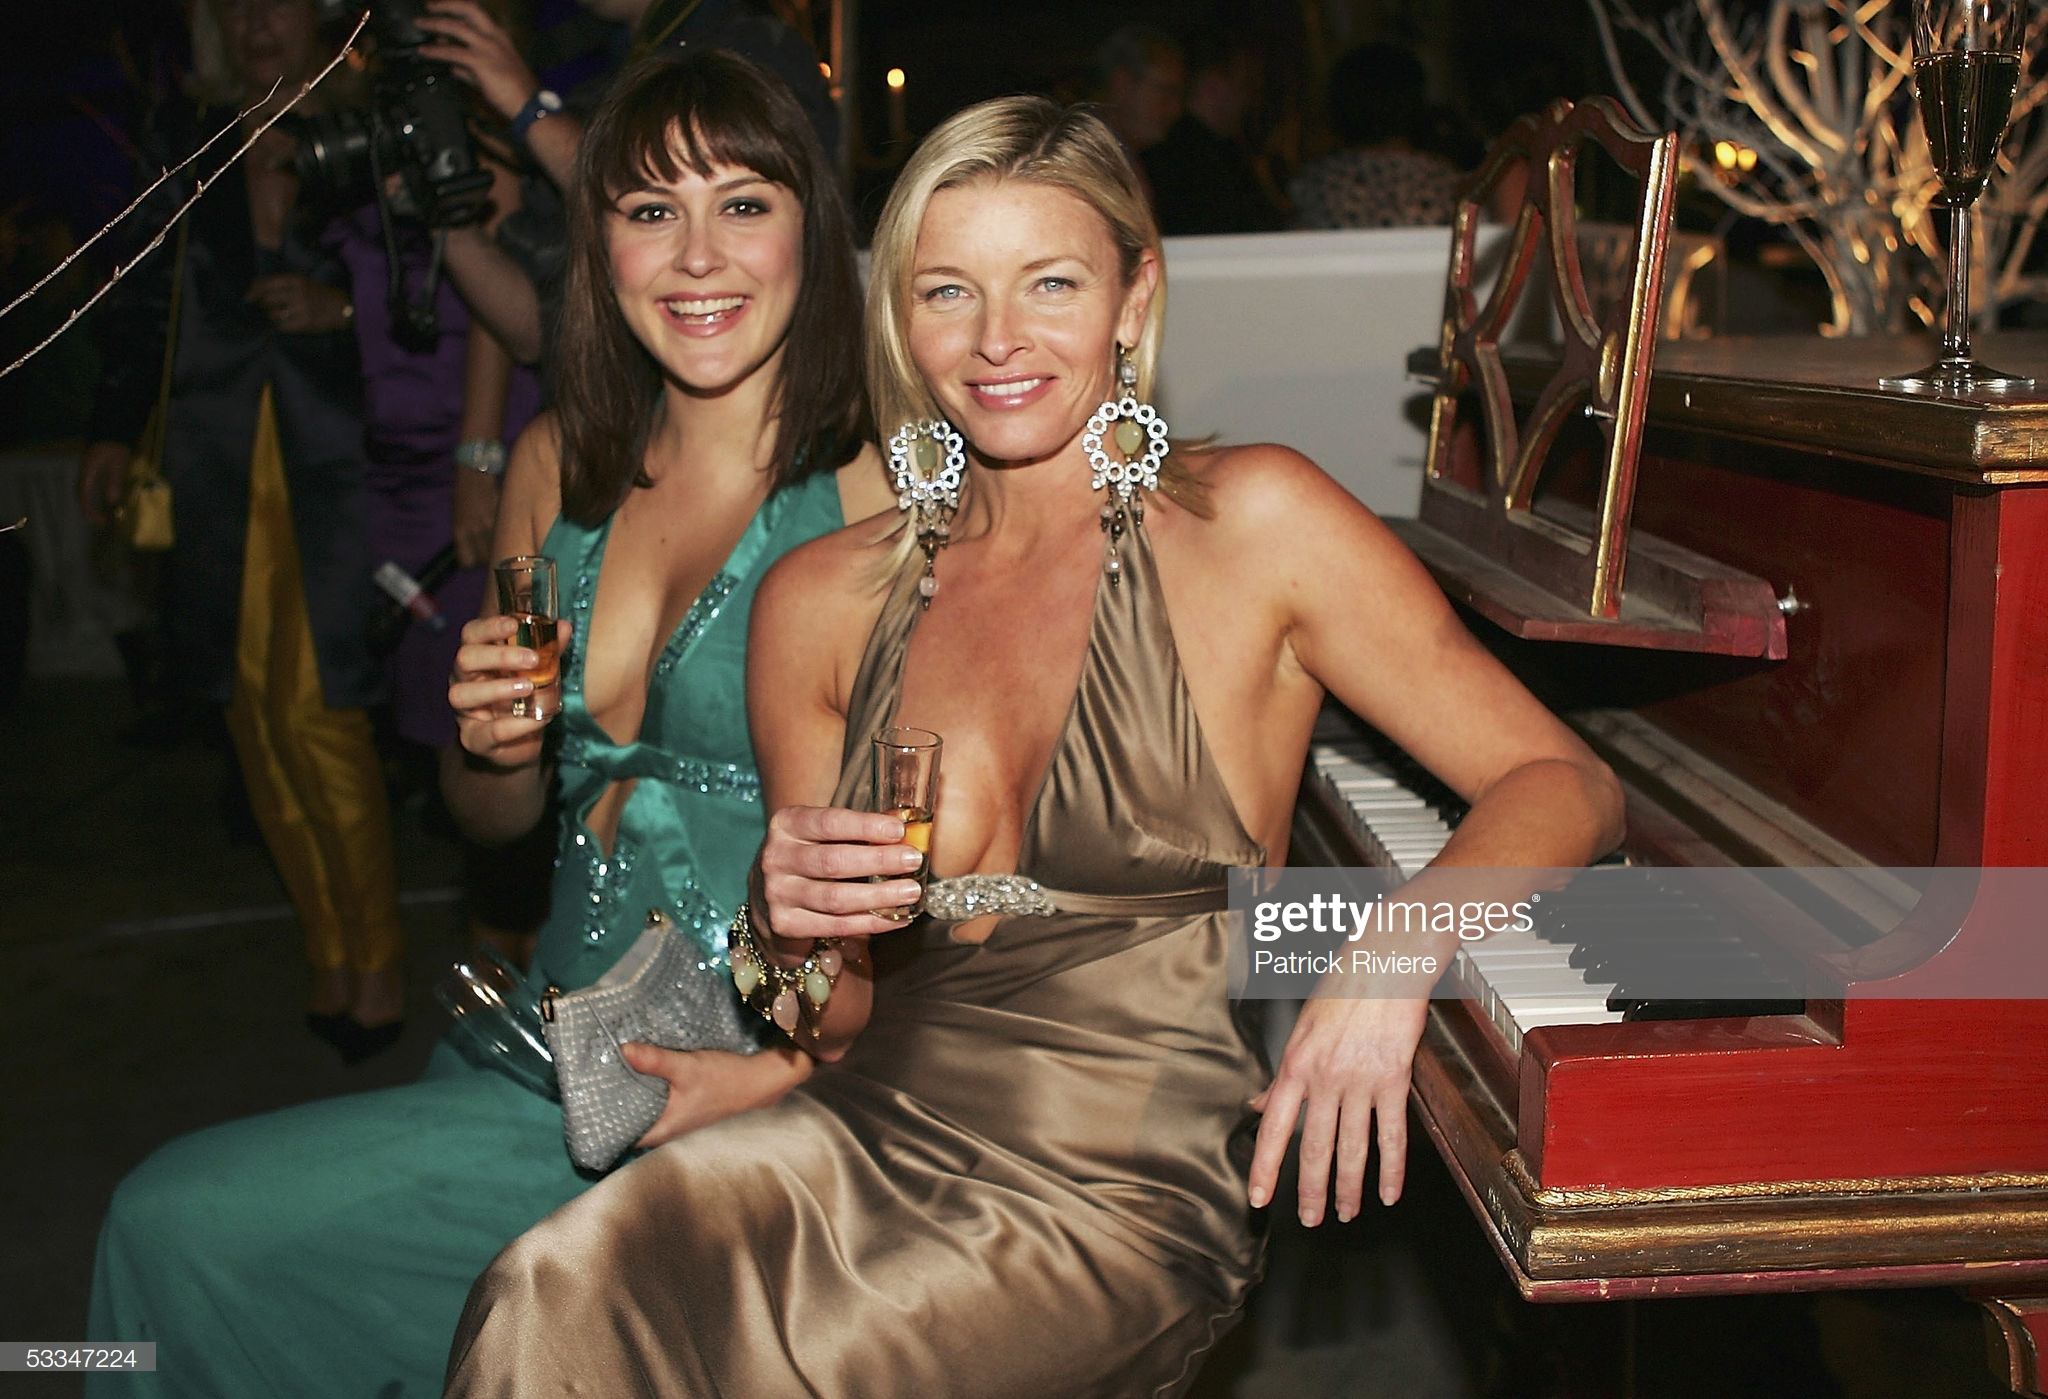 Tammy Macintosh and Natalie Saleeba at an event for All Saints (1998)